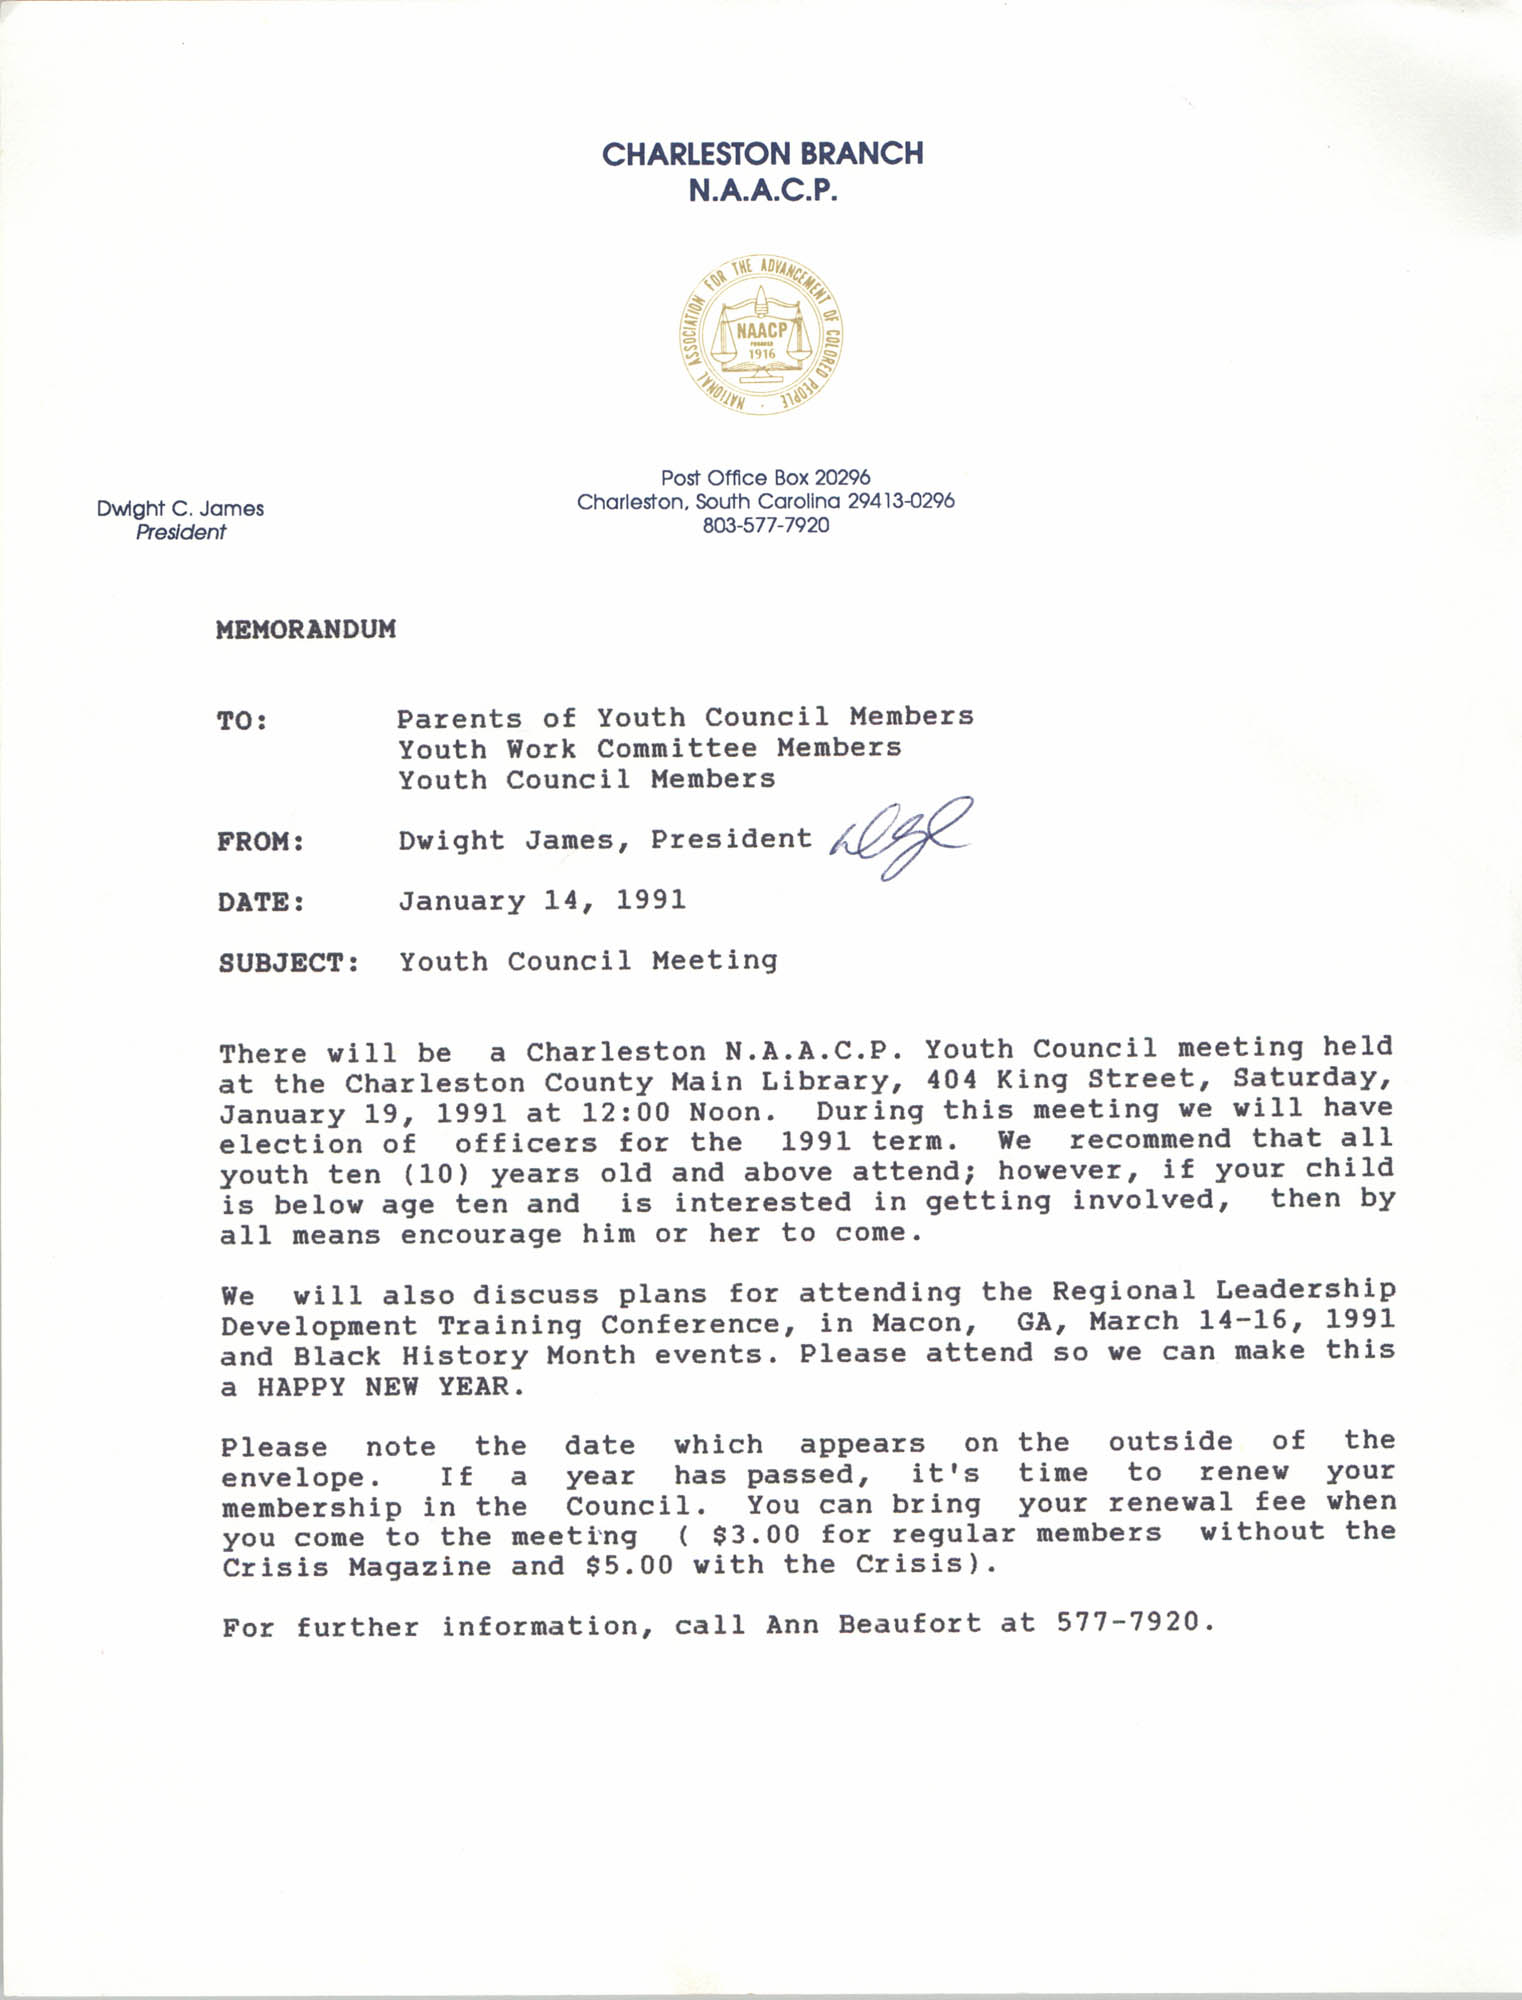 Memorandum, Dwight C. James,  Youth Council Meeting, January 14, 1991